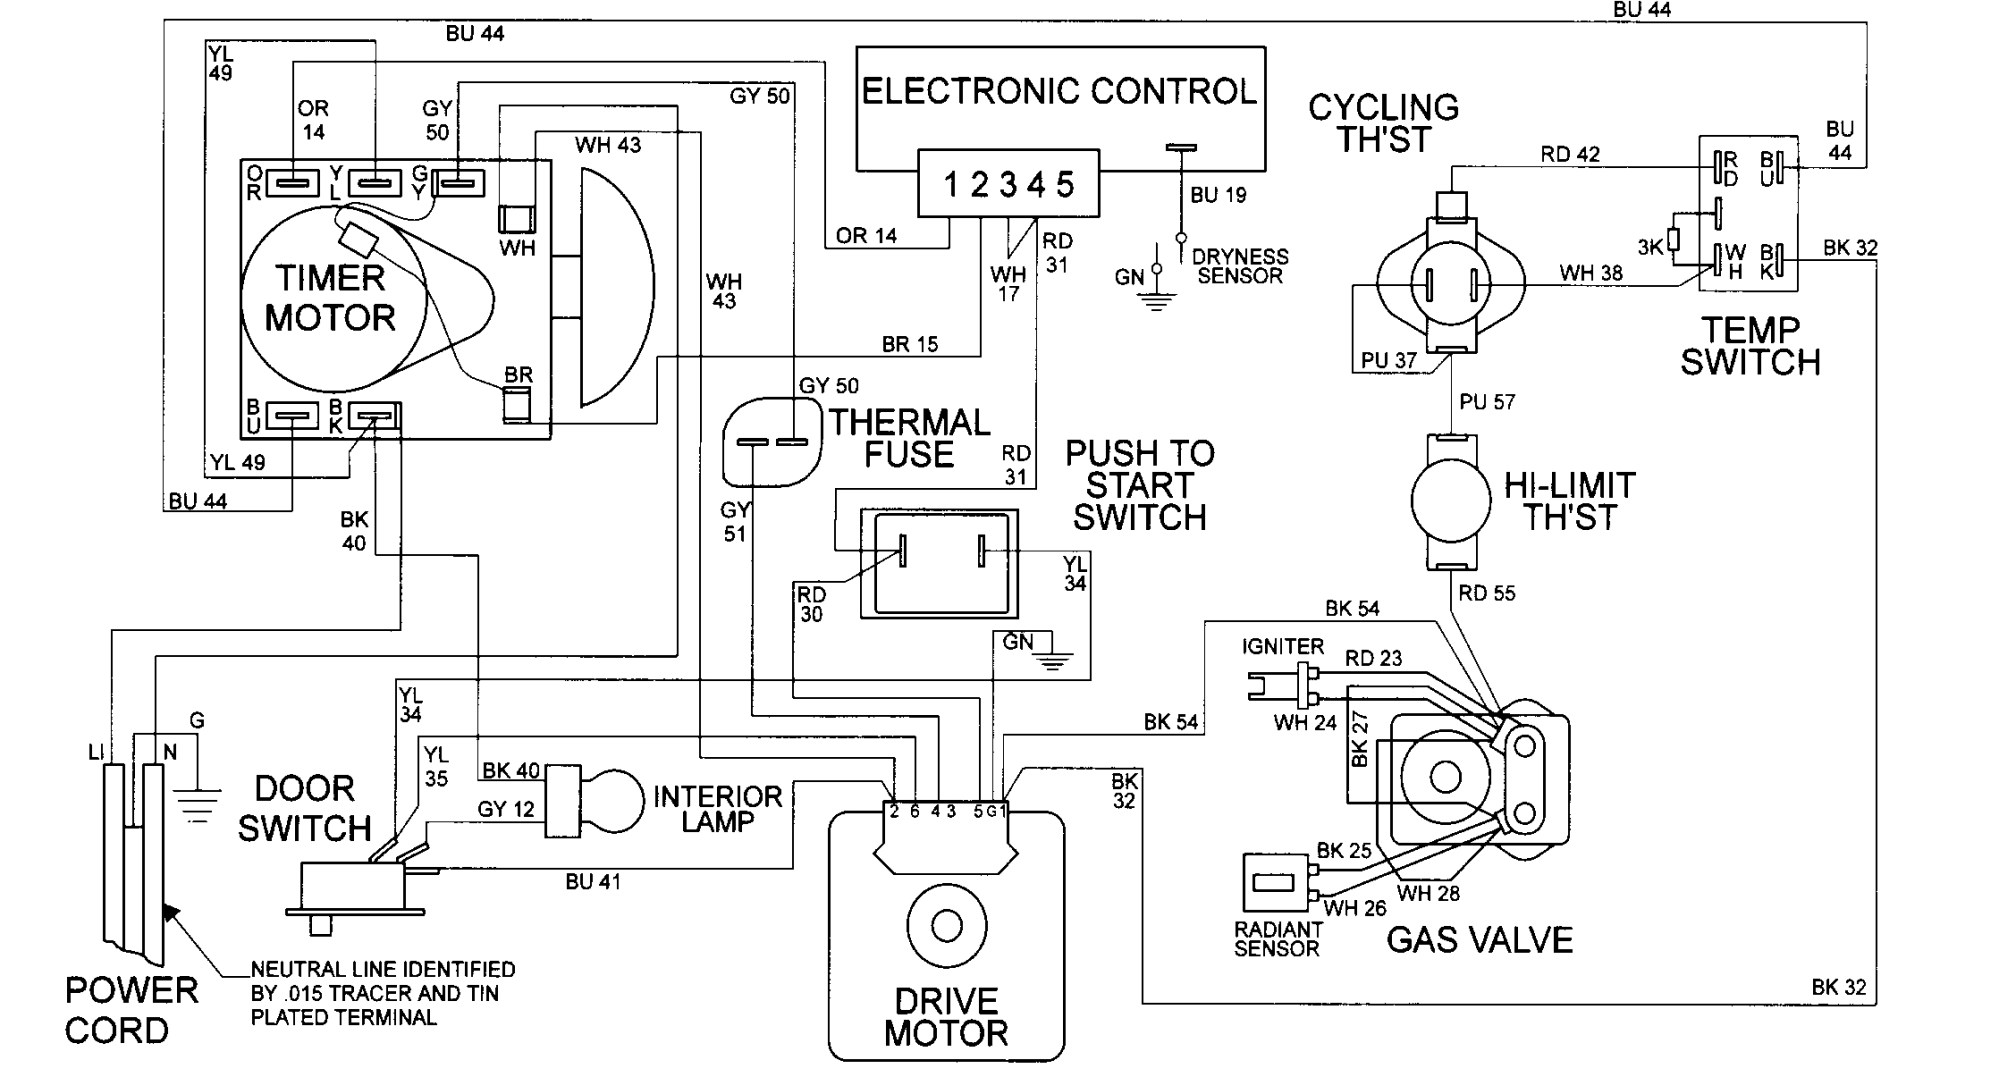 hight resolution of whirlpool gas dryer wiring diagram whirlpool gas dryer wiring diagram download wiring diagram maytag dryer